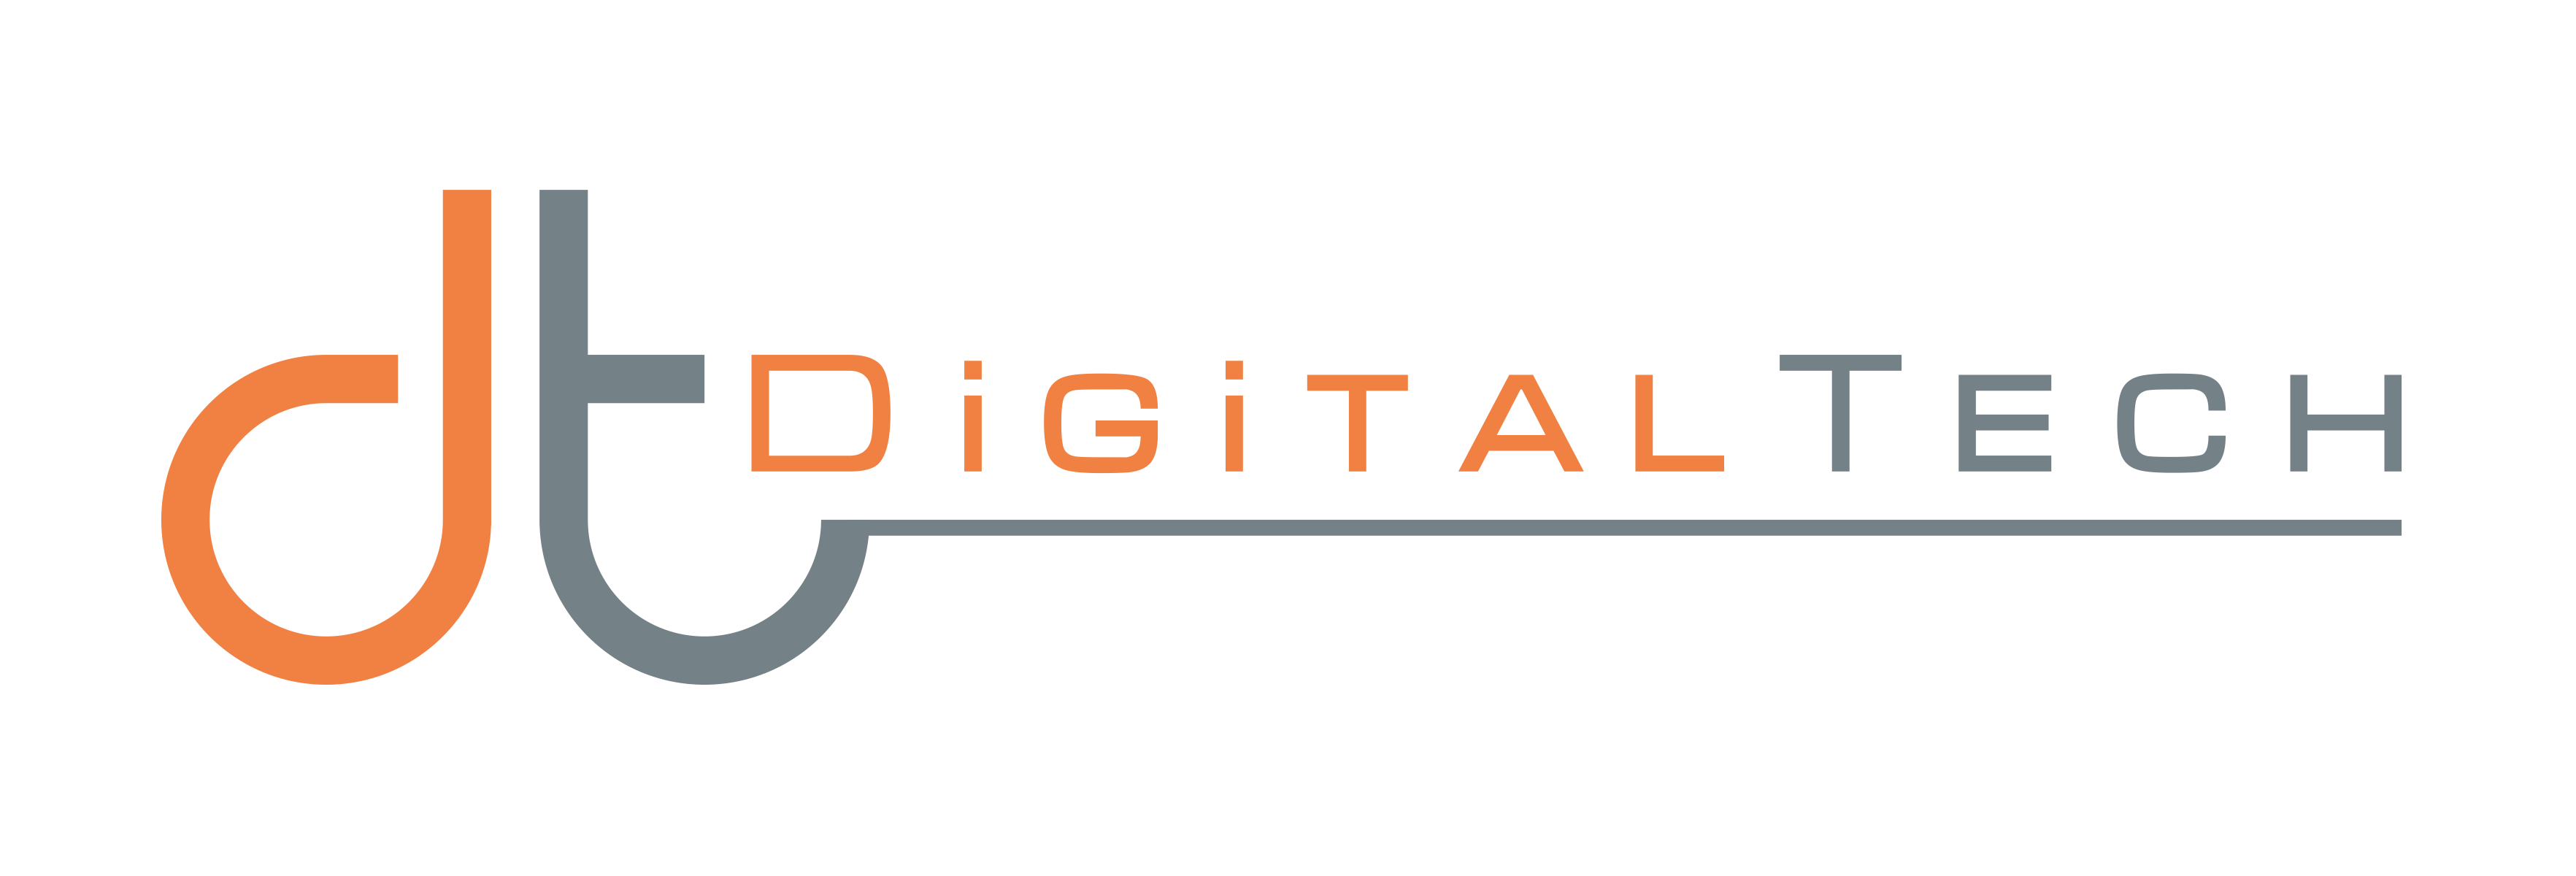 DigitalTech